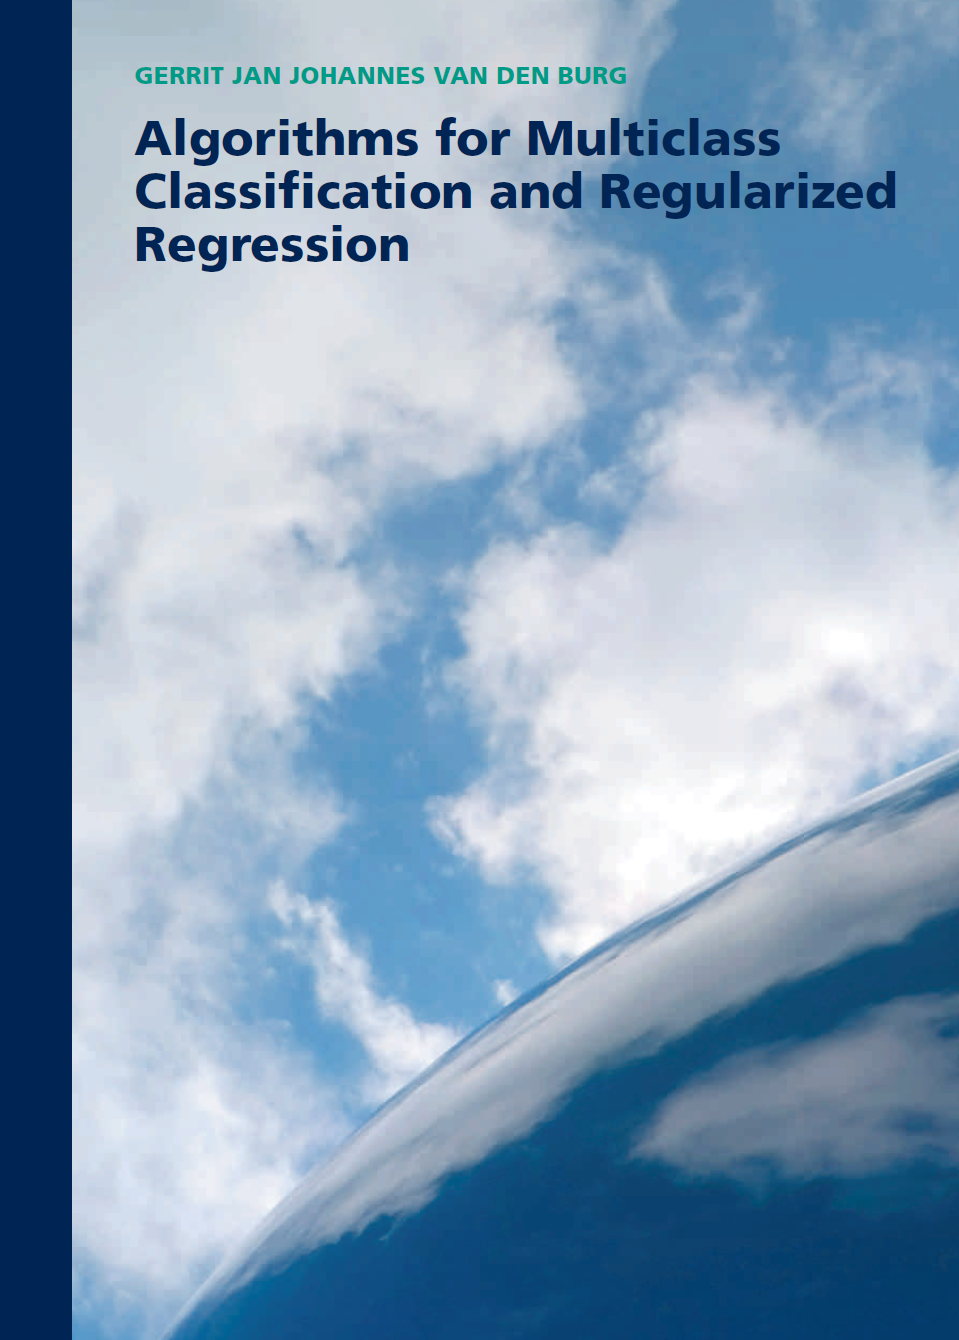 Algorithms for Multiclass Classification and Regularized Regression